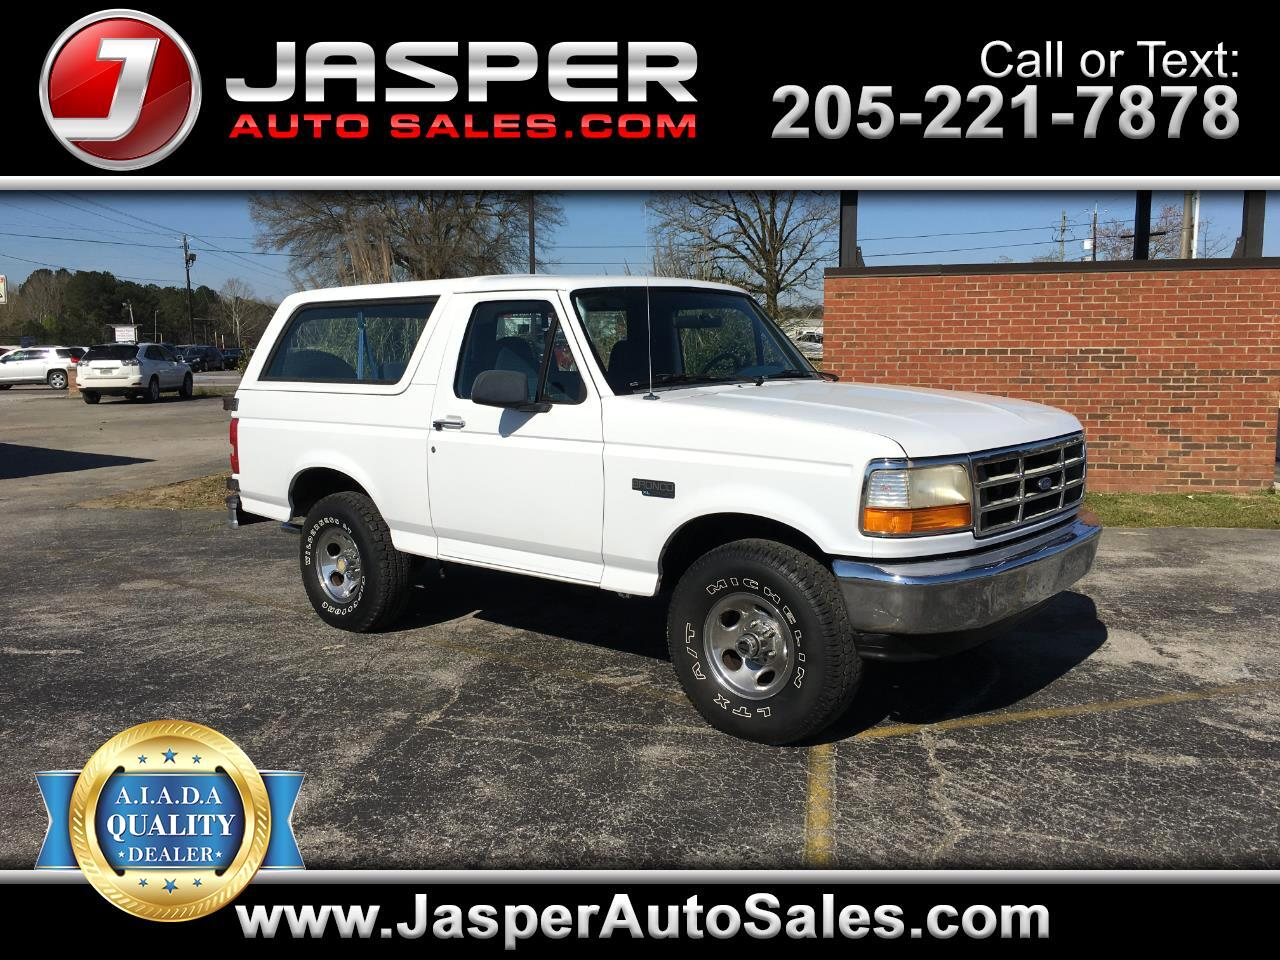 1996 Ford Bronco 105